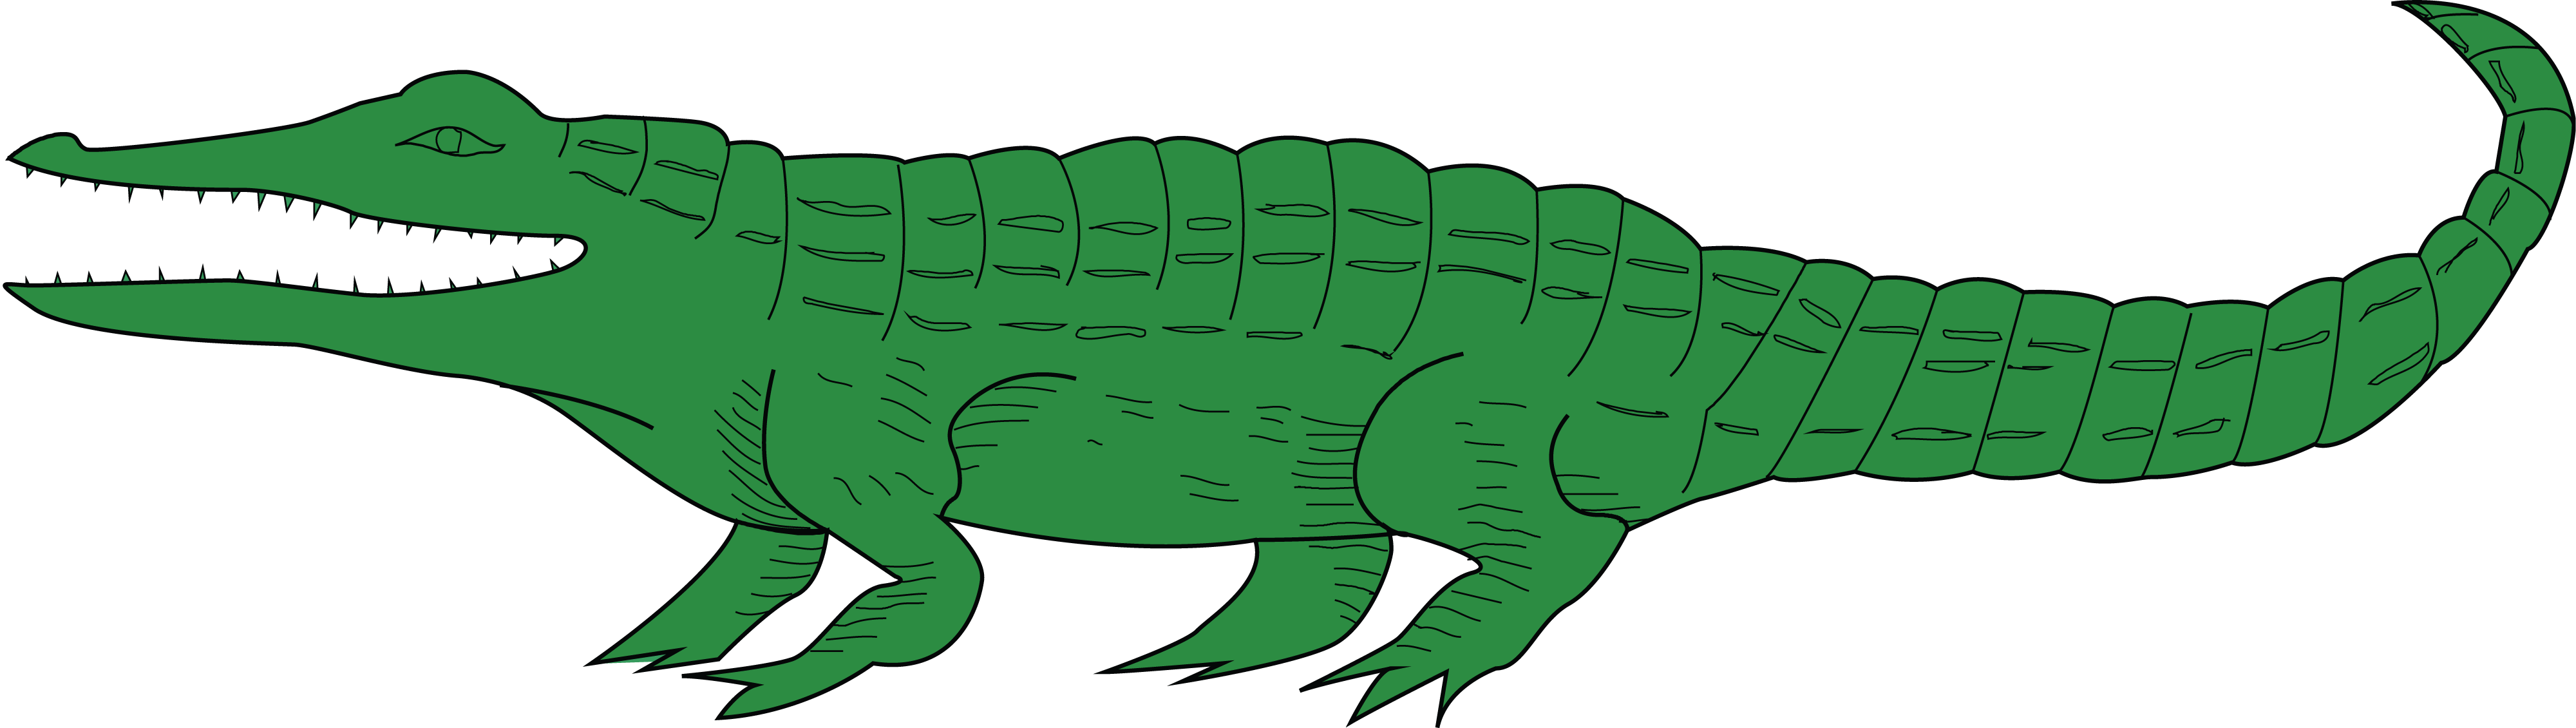 4000x1130 Free Clipart Of A Green Alligator